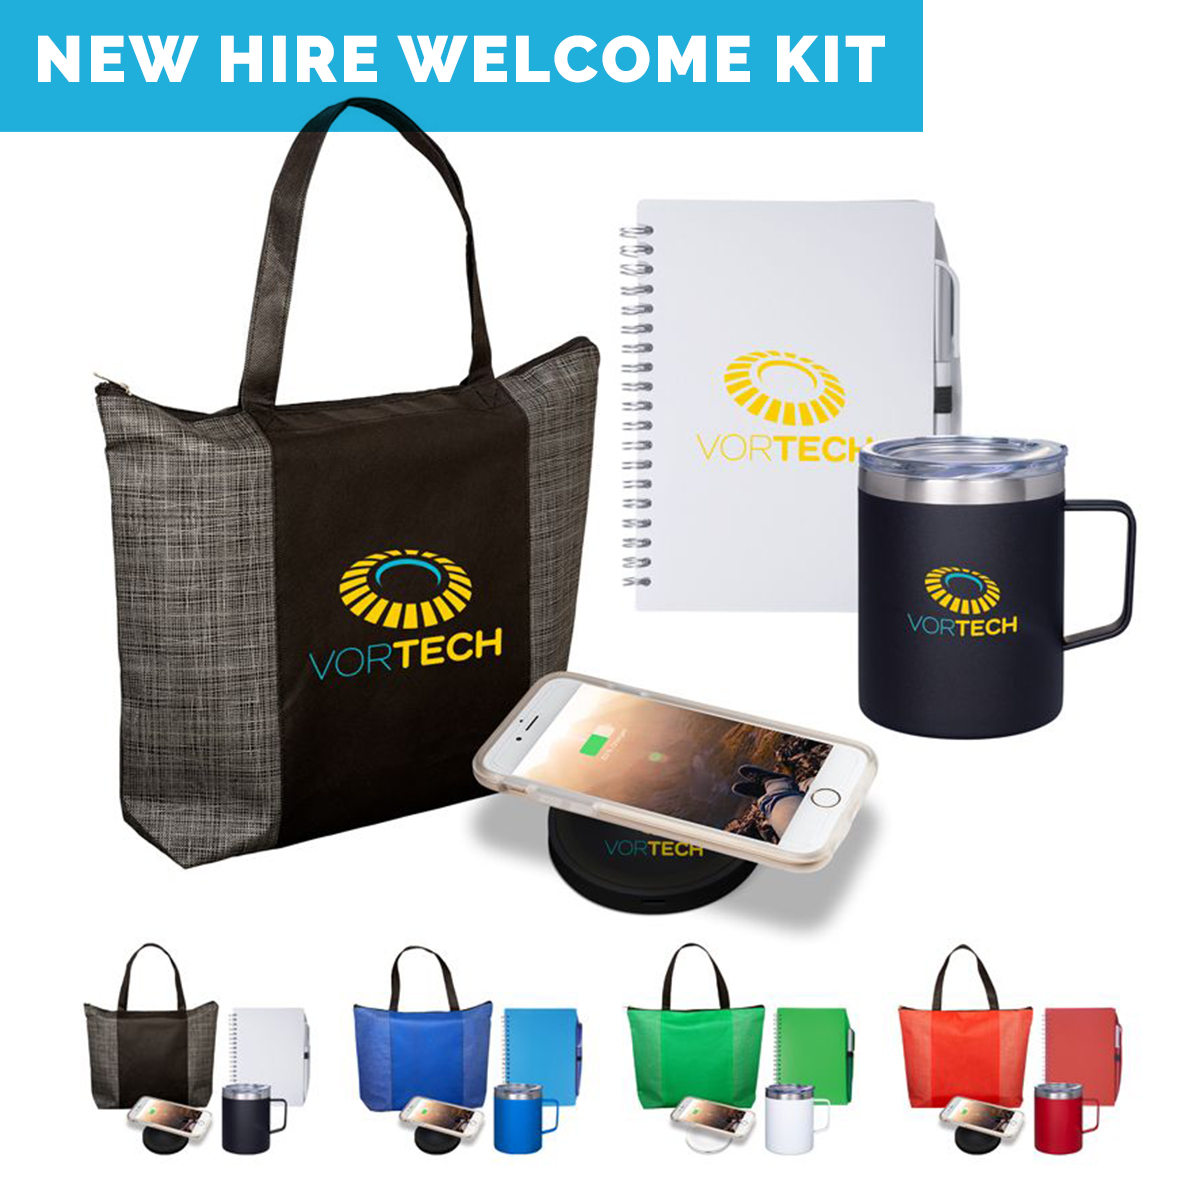 Work From Home Kits-REMOTE EMPLOYEE WELCOME KIT-VIRTUAL TEAMS